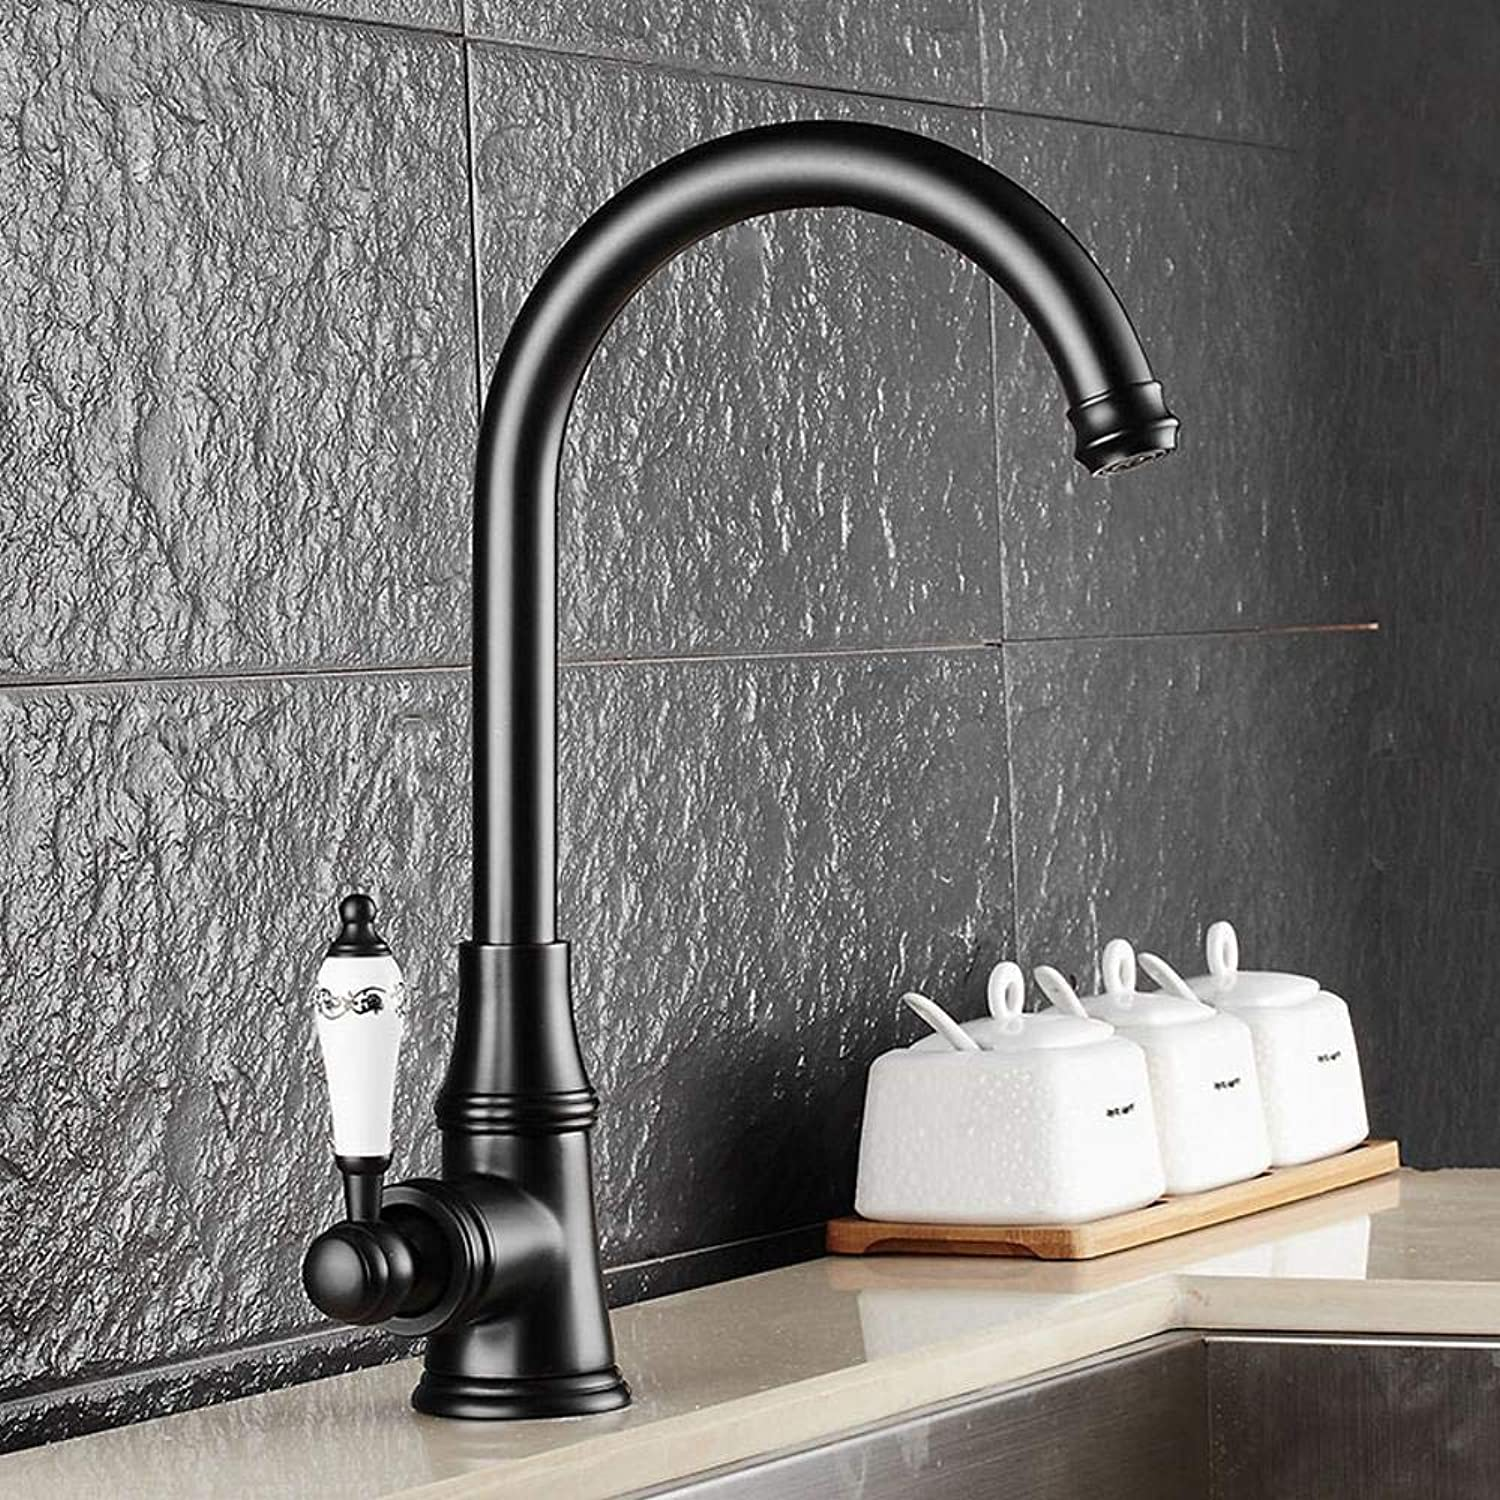 Lxj Faucet single lever single hole hot and cold water kitchen faucet redatable faucet